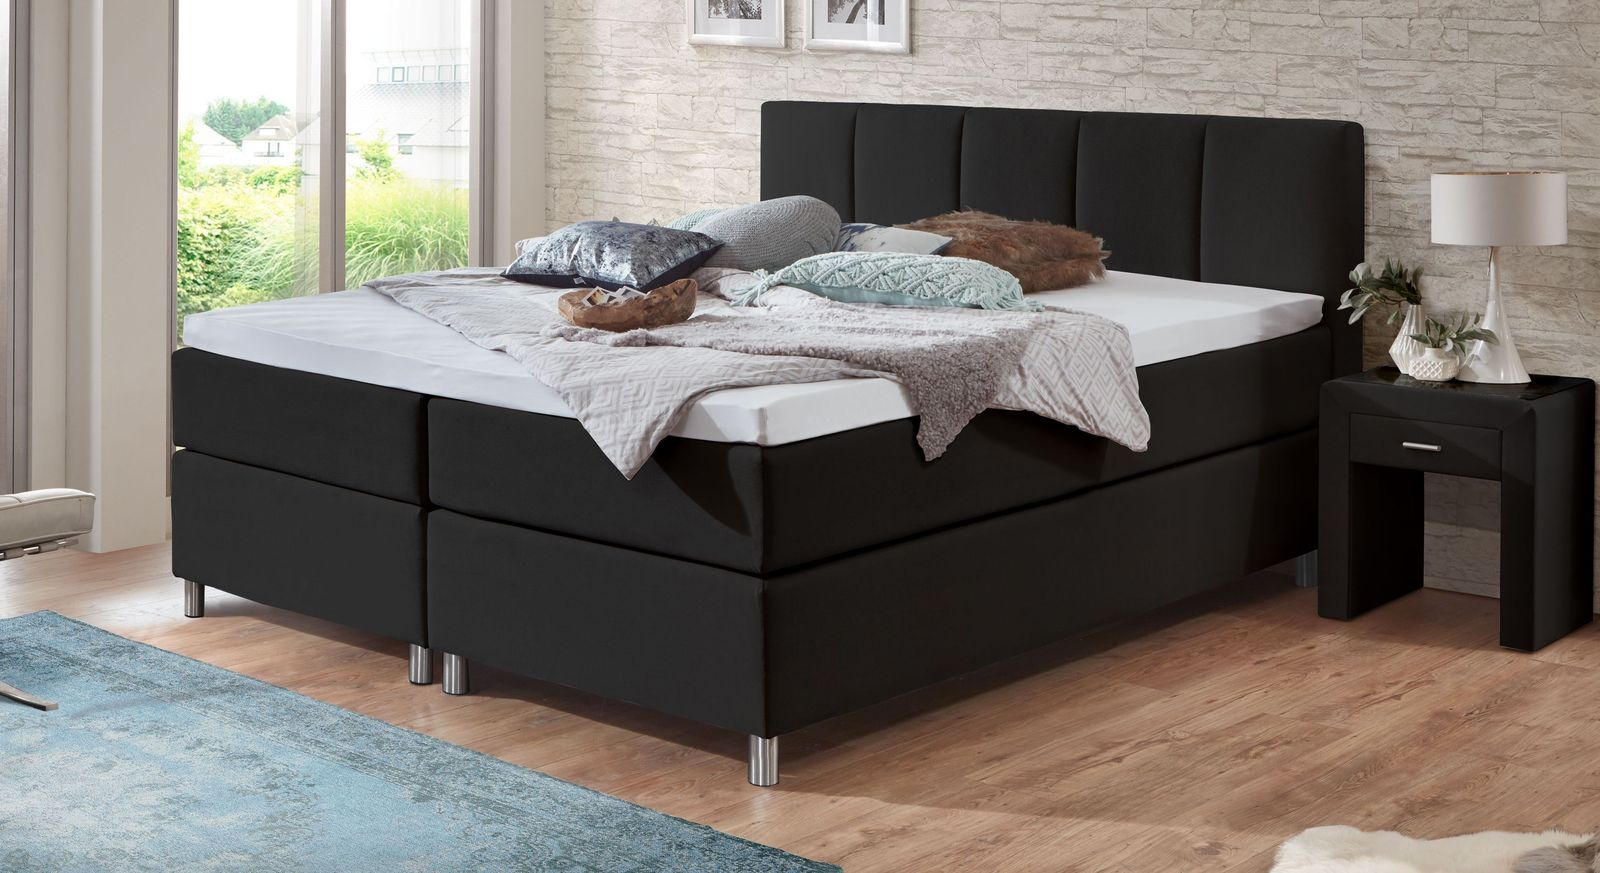 boxspringbett in 2 h hen mit taschenfederkern matratze rockford. Black Bedroom Furniture Sets. Home Design Ideas